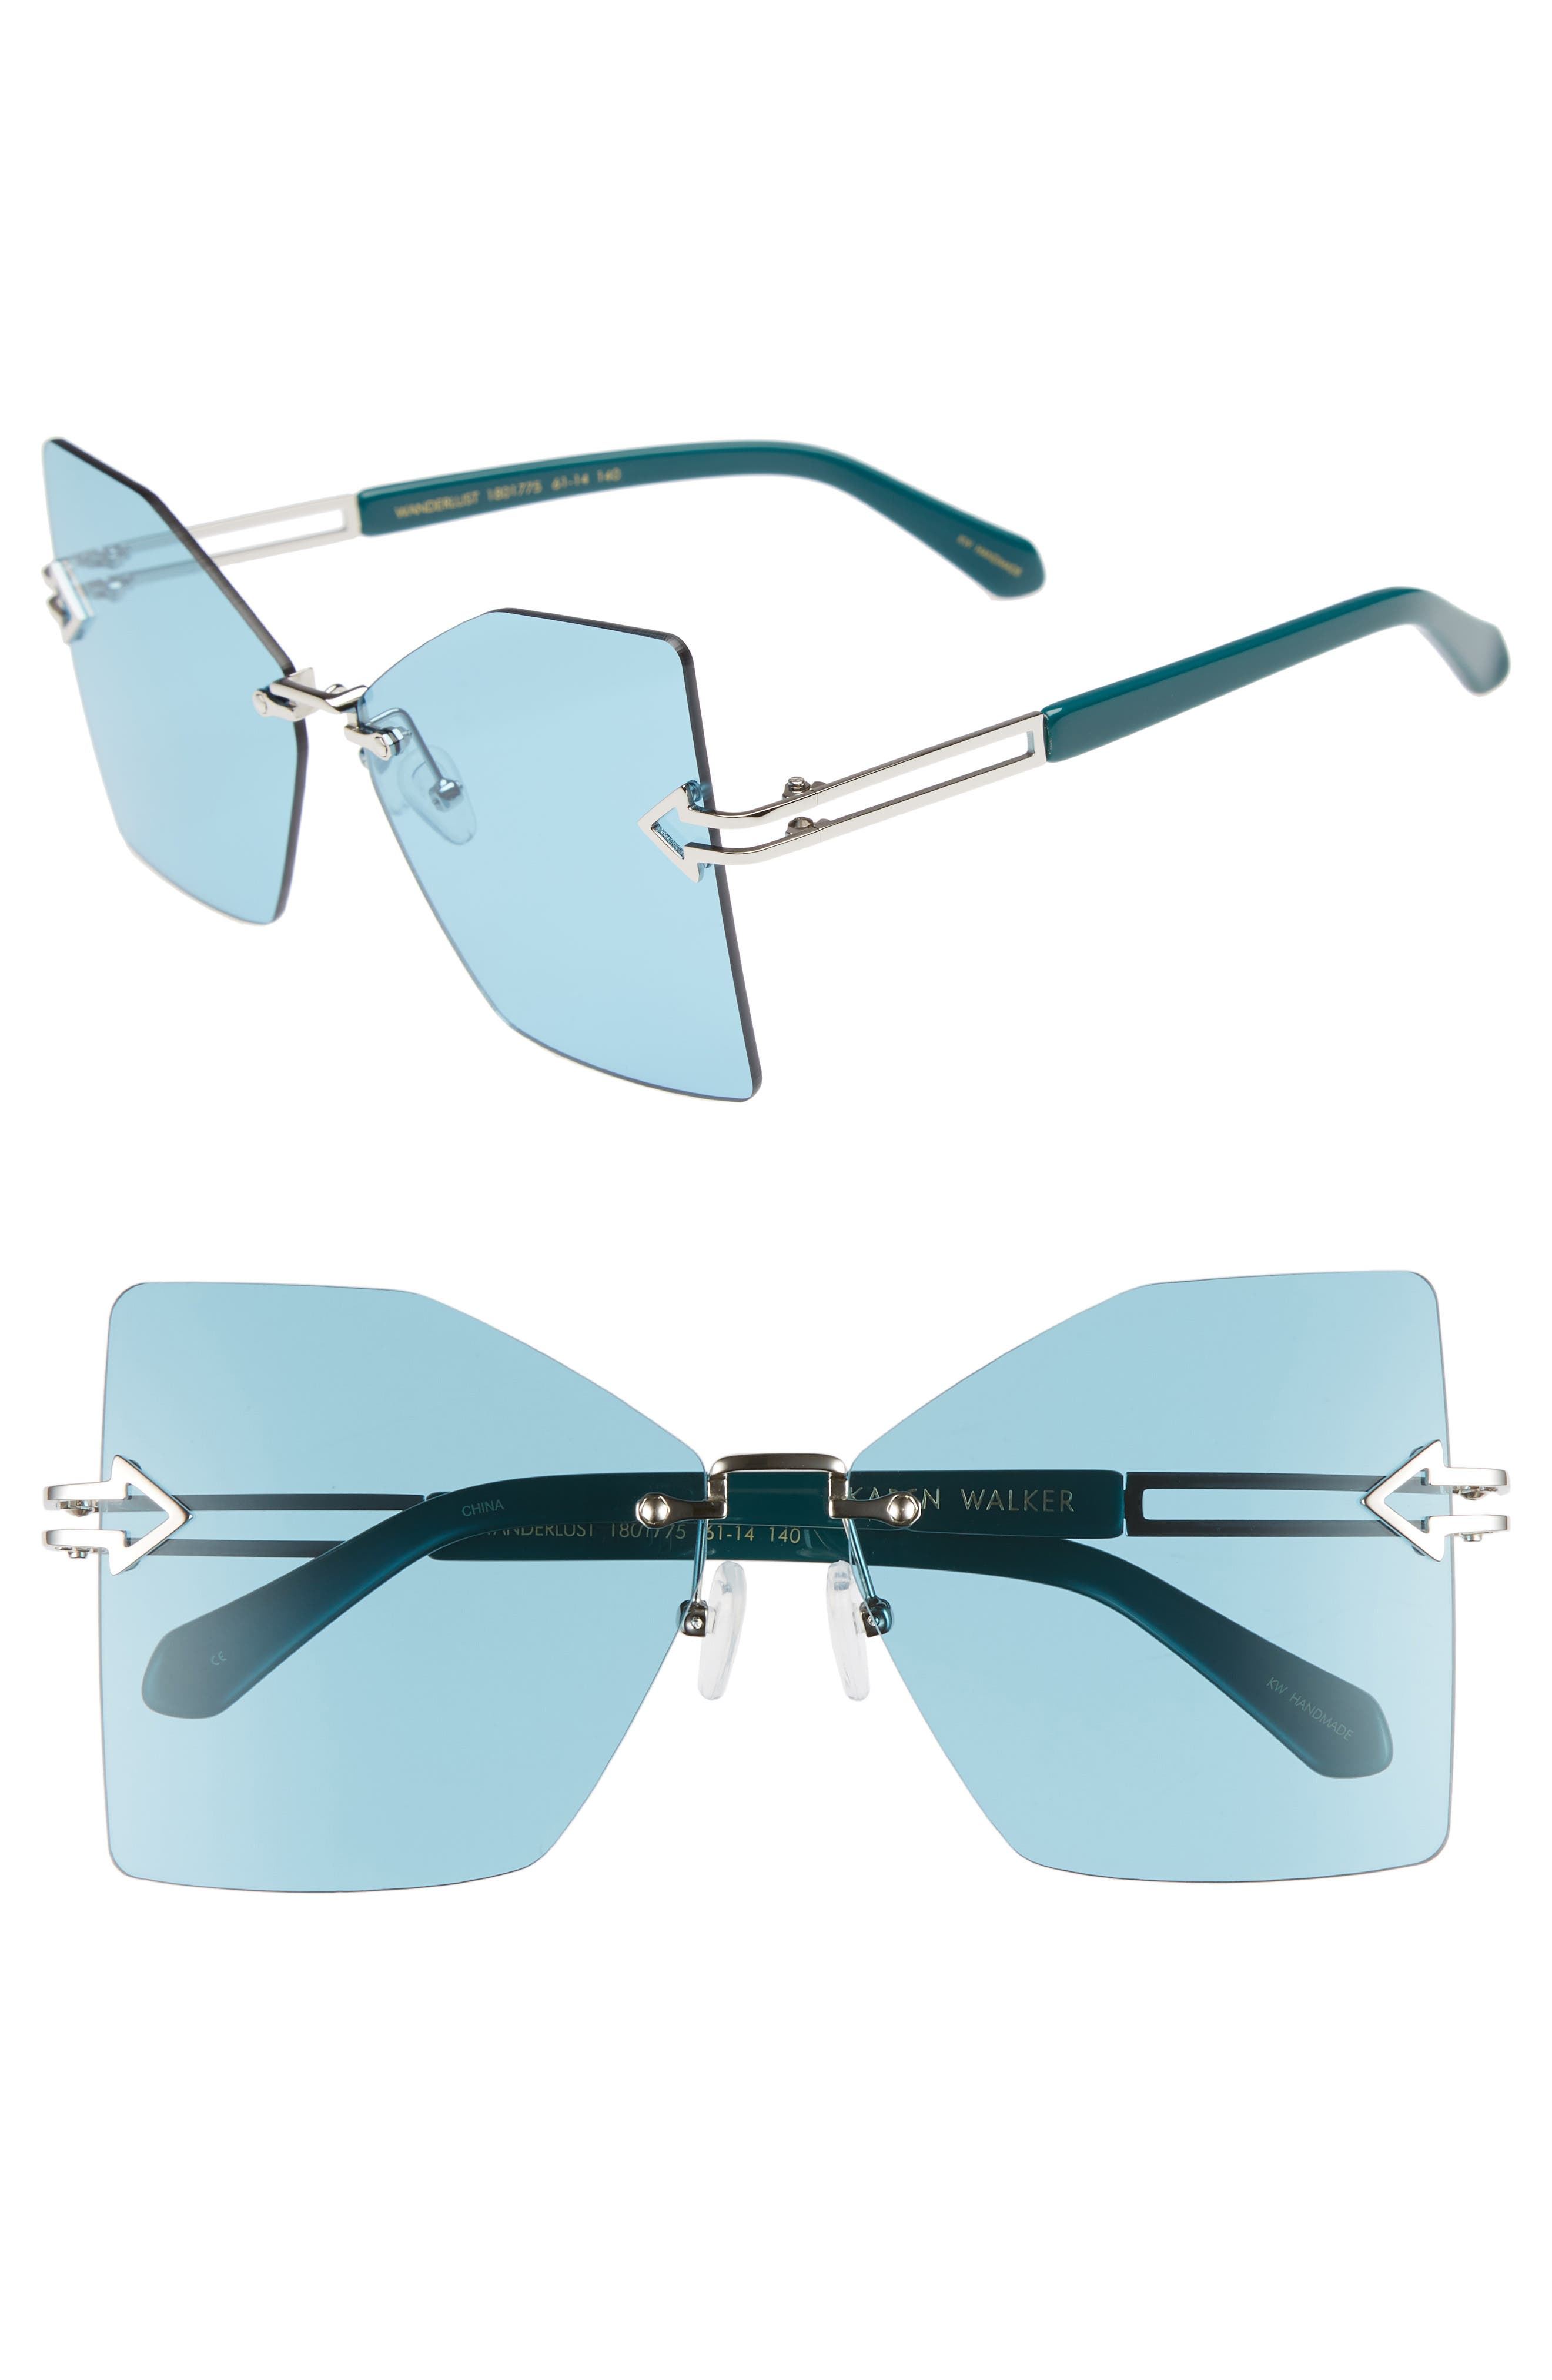 Wanderlust 61mm Butterfly Sunglasses,                             Main thumbnail 1, color,                             SHINY SILVER/ EMERALD